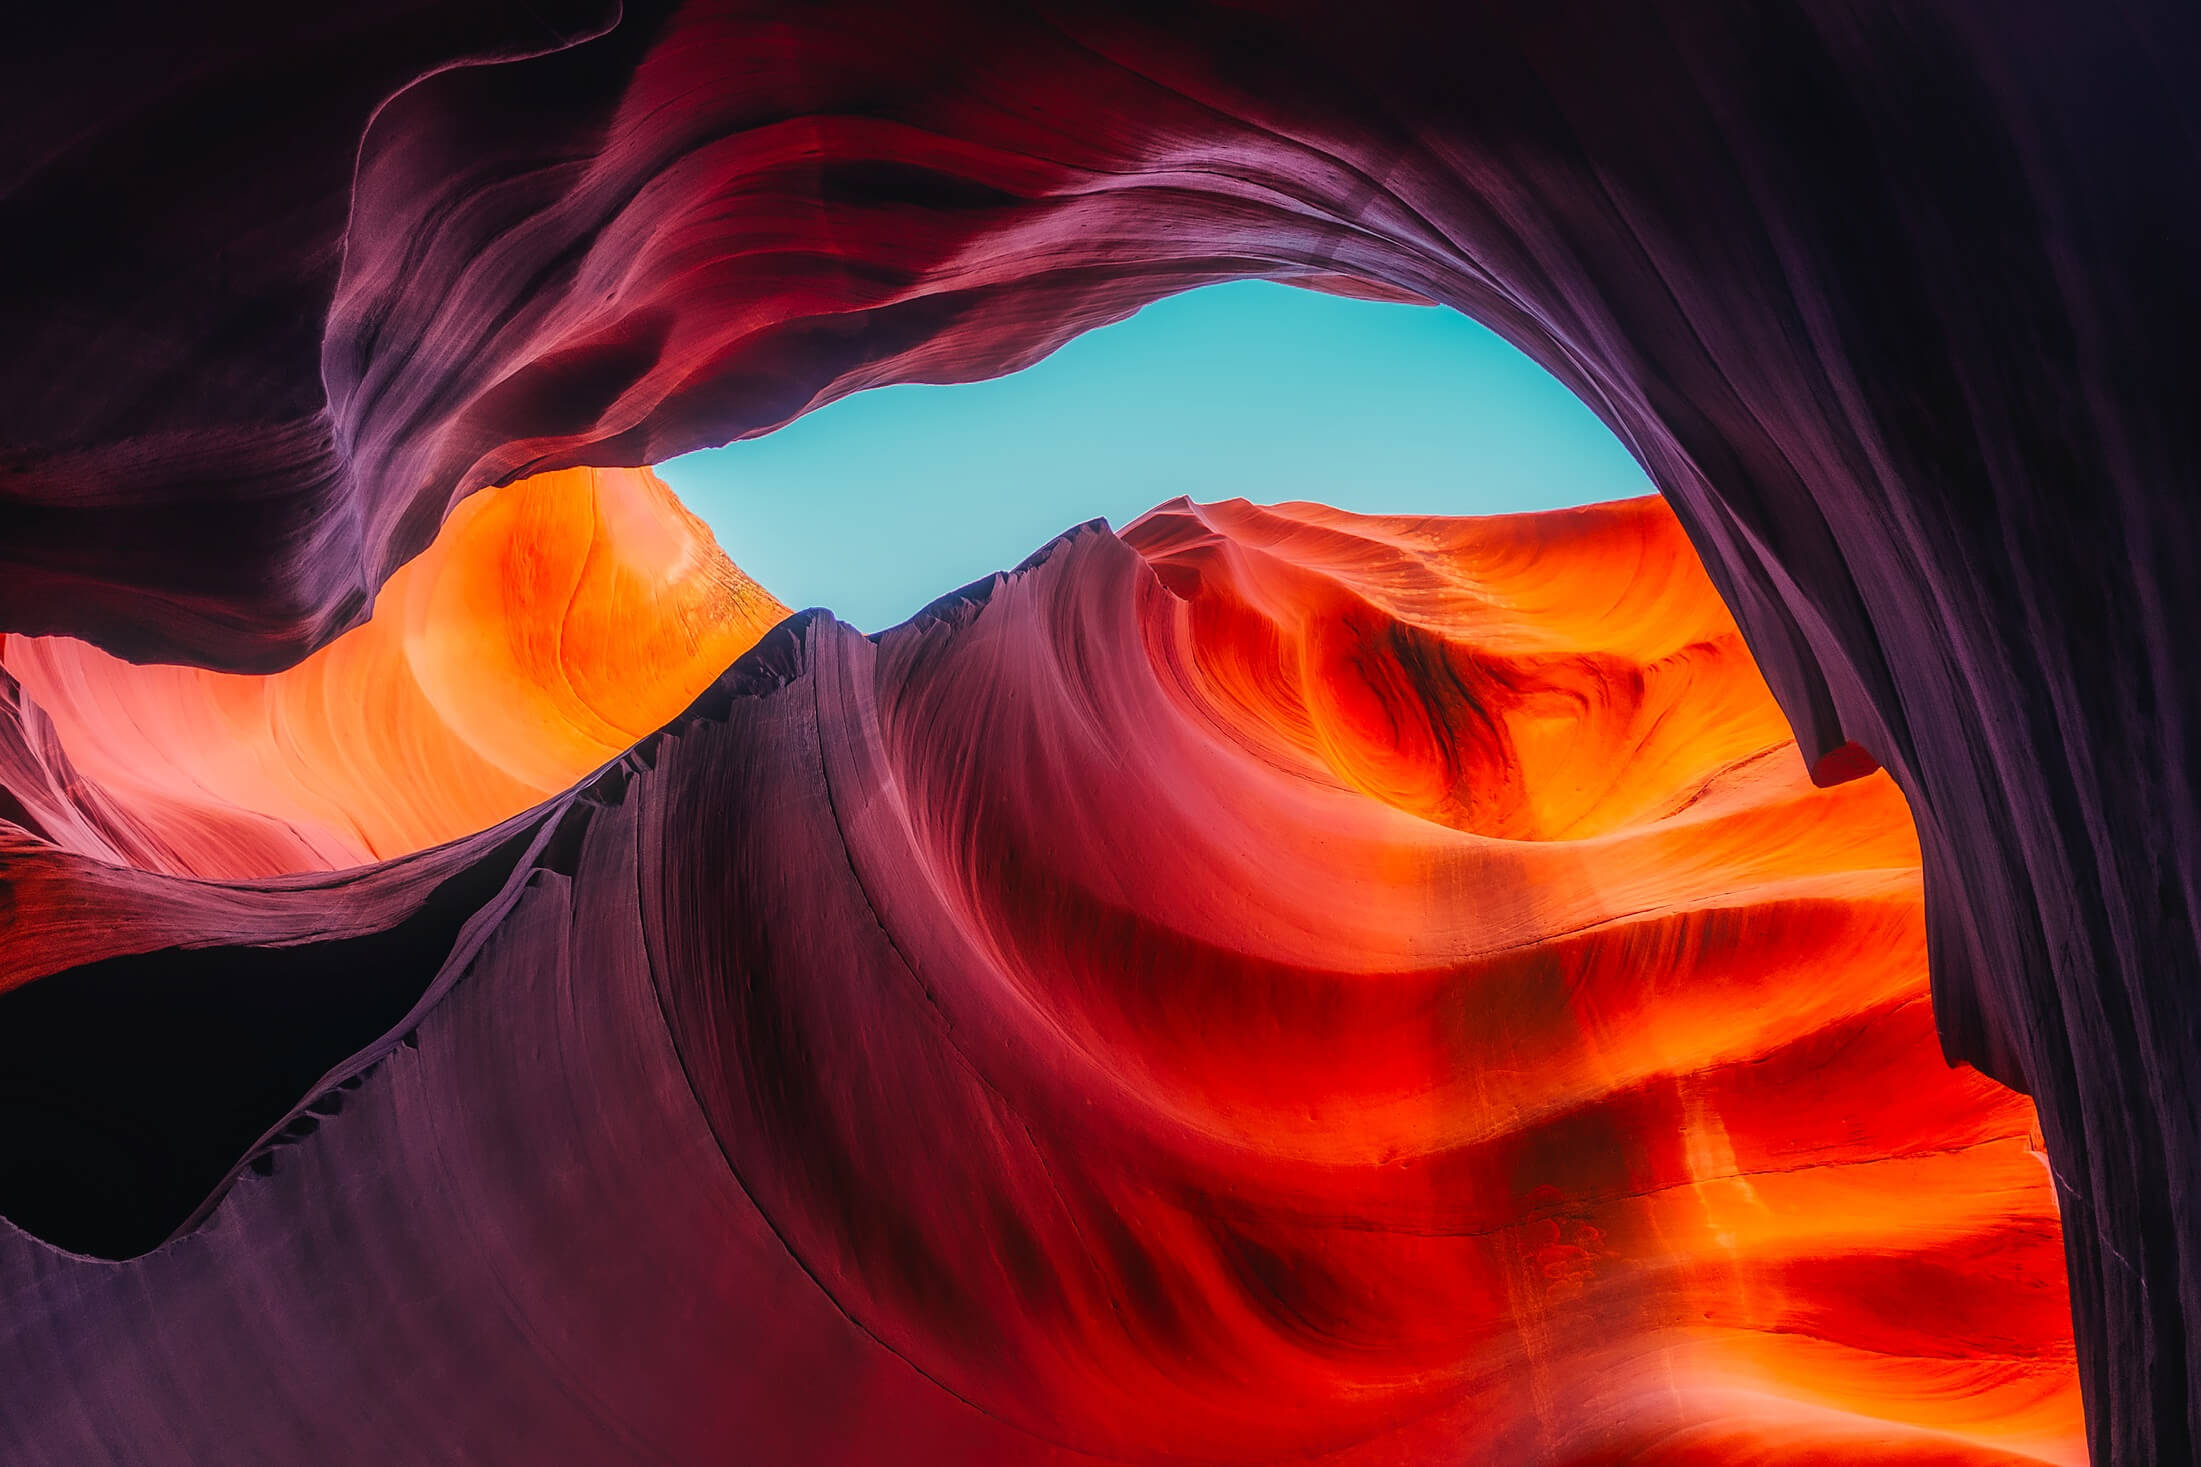 vibrant warm-colored canyon rocks and cerulean sky. - iPhone camera antelope canyon